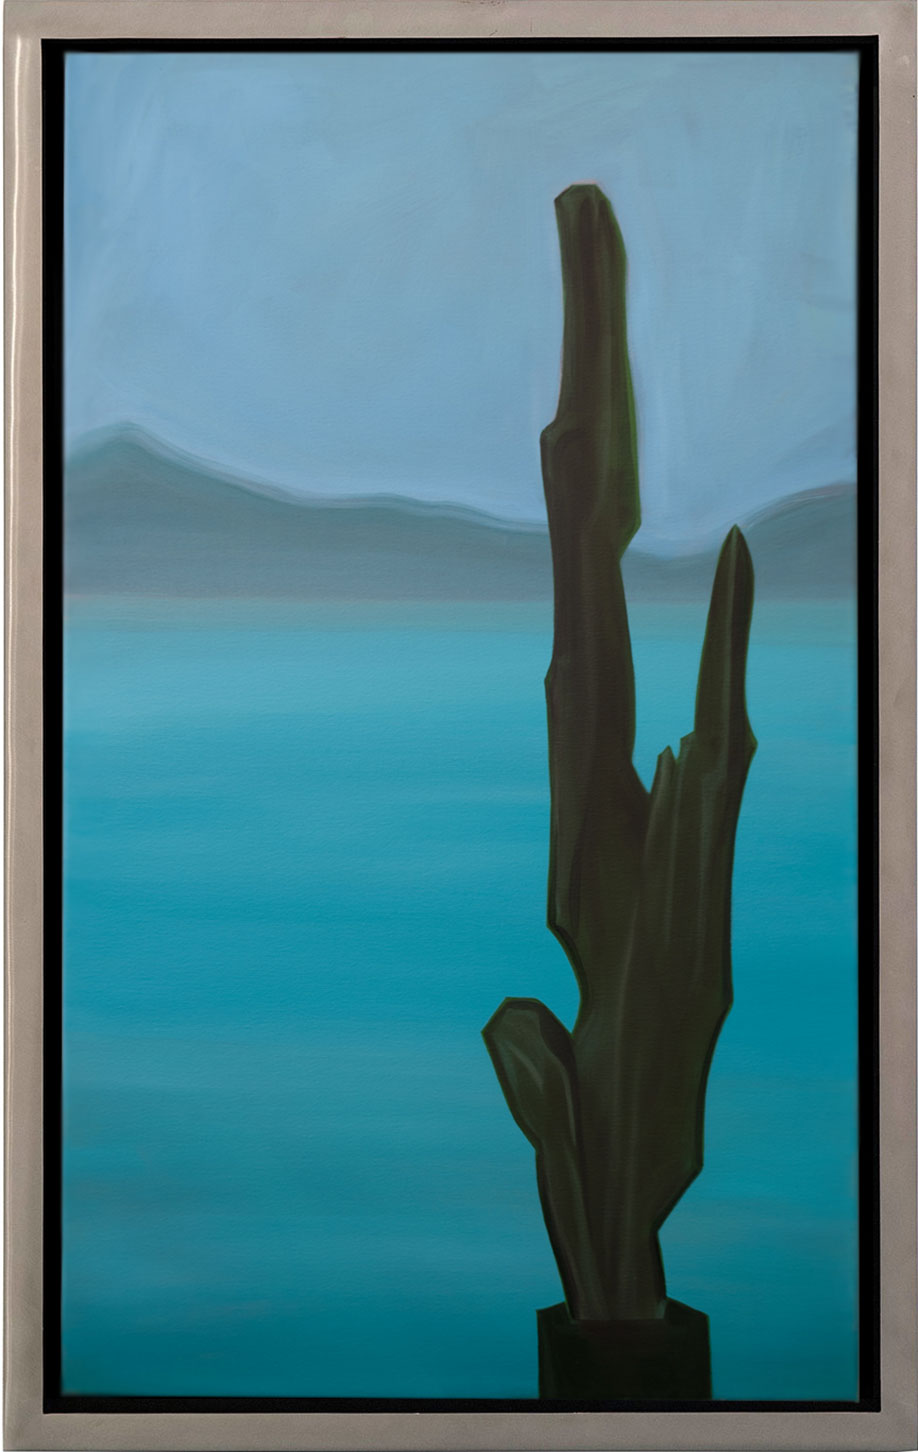 <b>Title: </b>Cactus<br /><b>Year: </b>2015<br /><b>Medium: </b>Oil on canvas<br /><b>Size: </b>98 x 63 cm